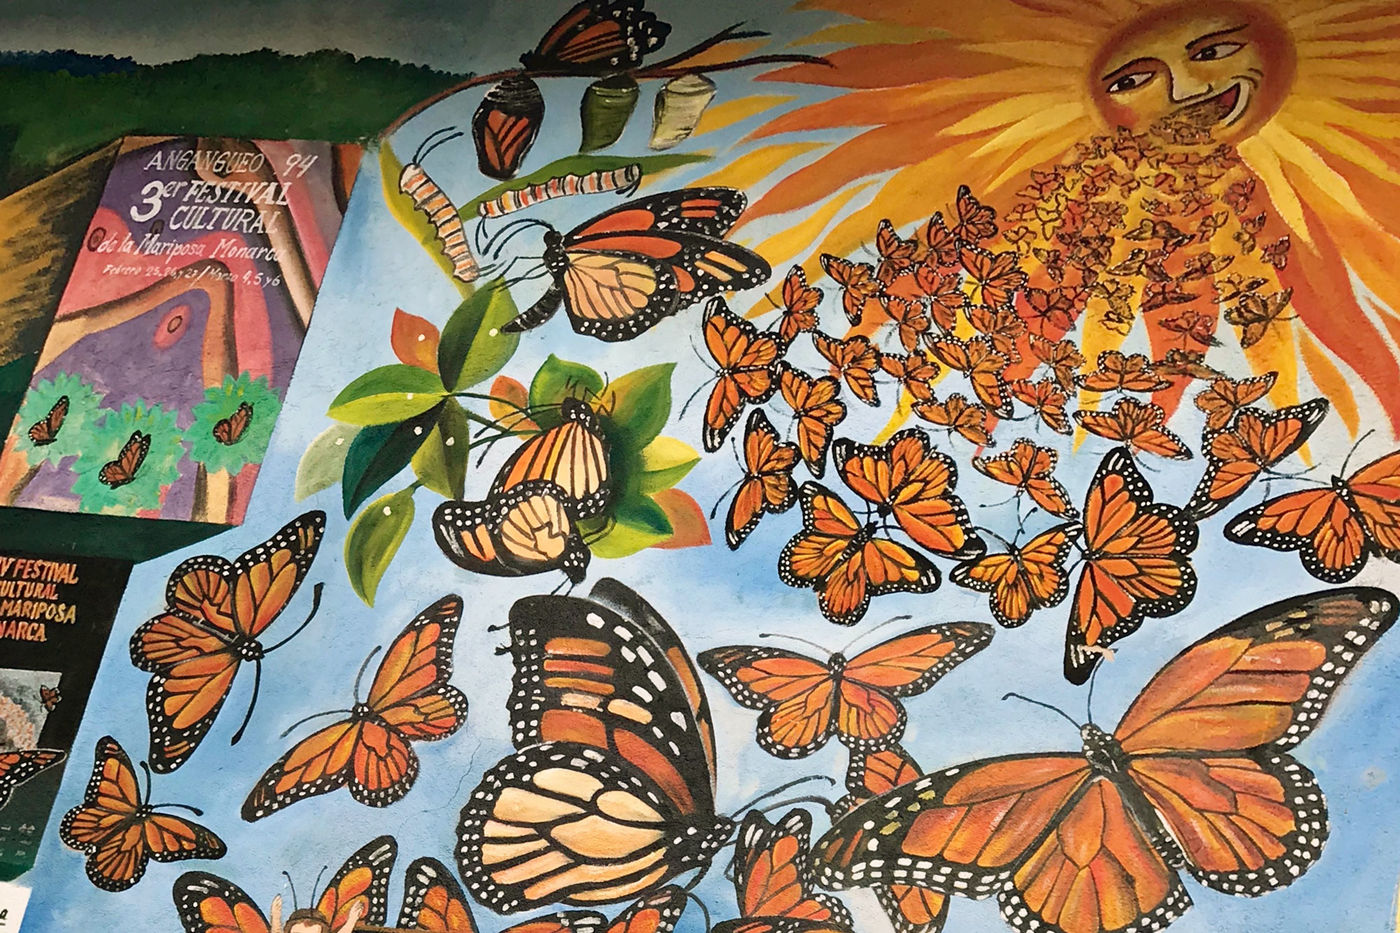 A painted mural shows the sun with a face, and orange and black monarch butterflies flying out of its mouth. The monarch life cycle is also depicted, showing caterpillars and chrysalises.